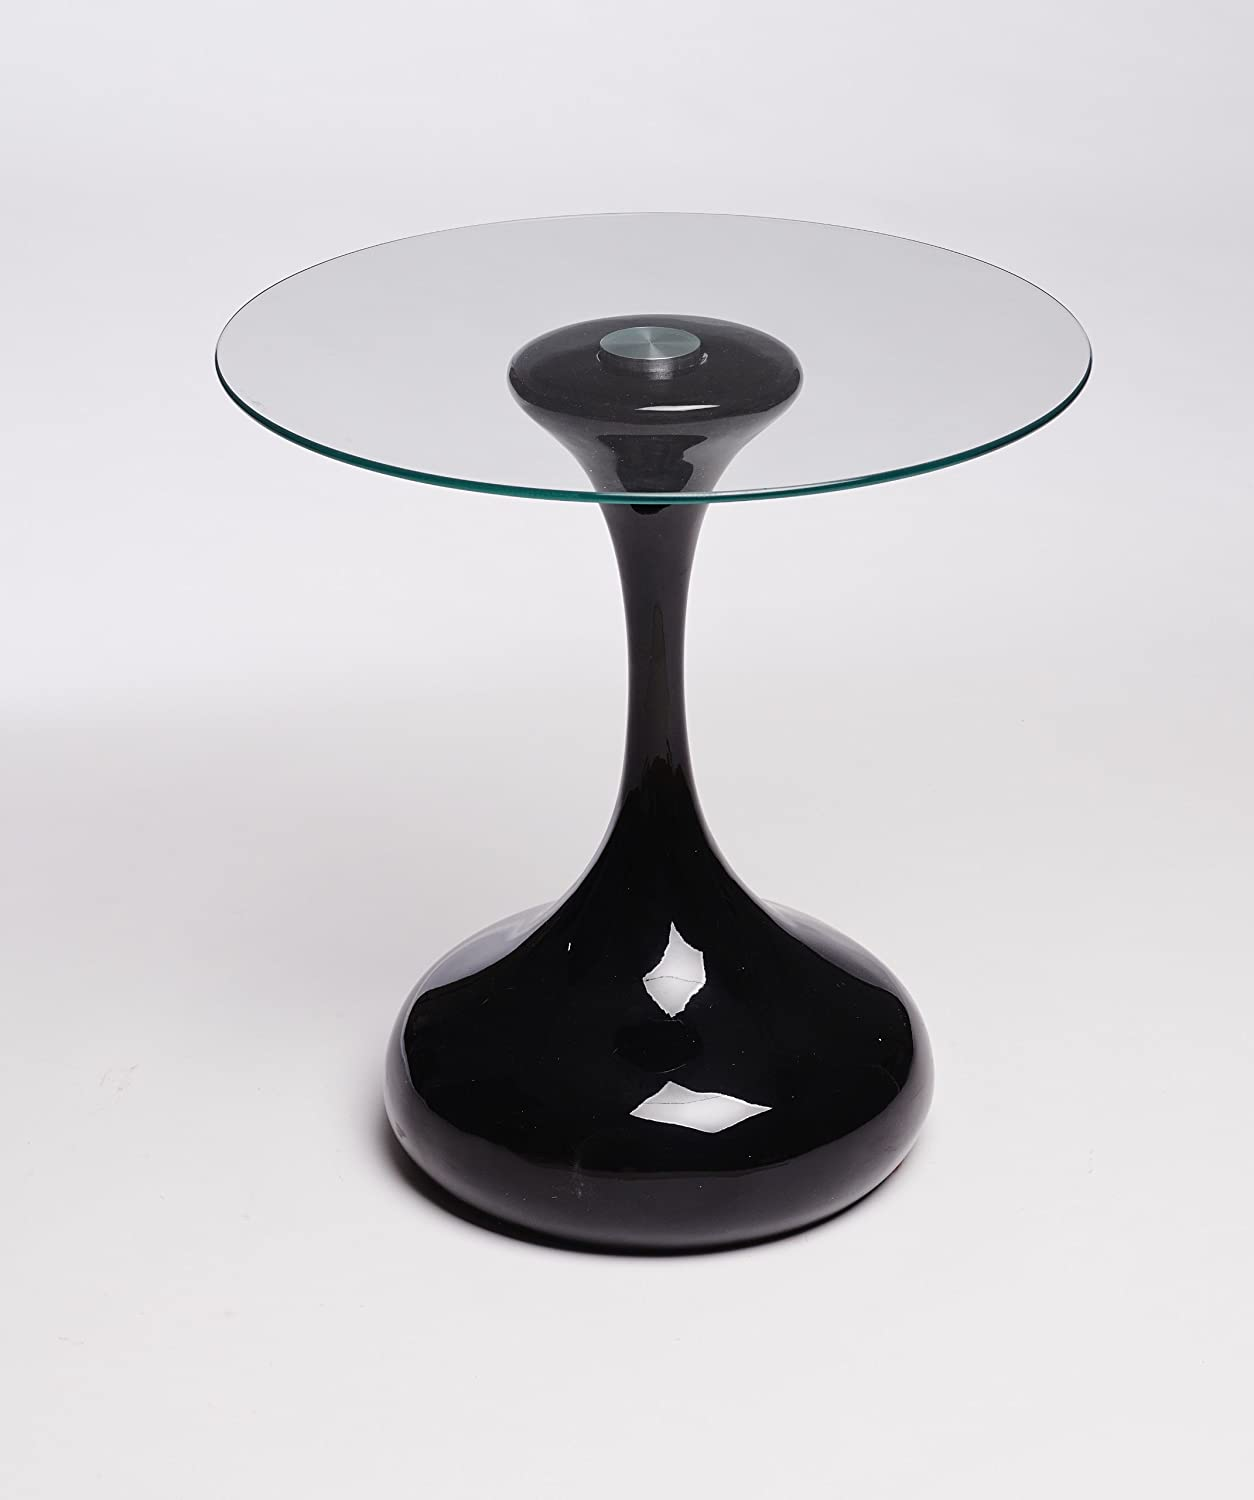 Designer Hour Glass Round Side Table, End Table, Lamp Table (RED):  Amazon.co.uk: Kitchen U0026 Home